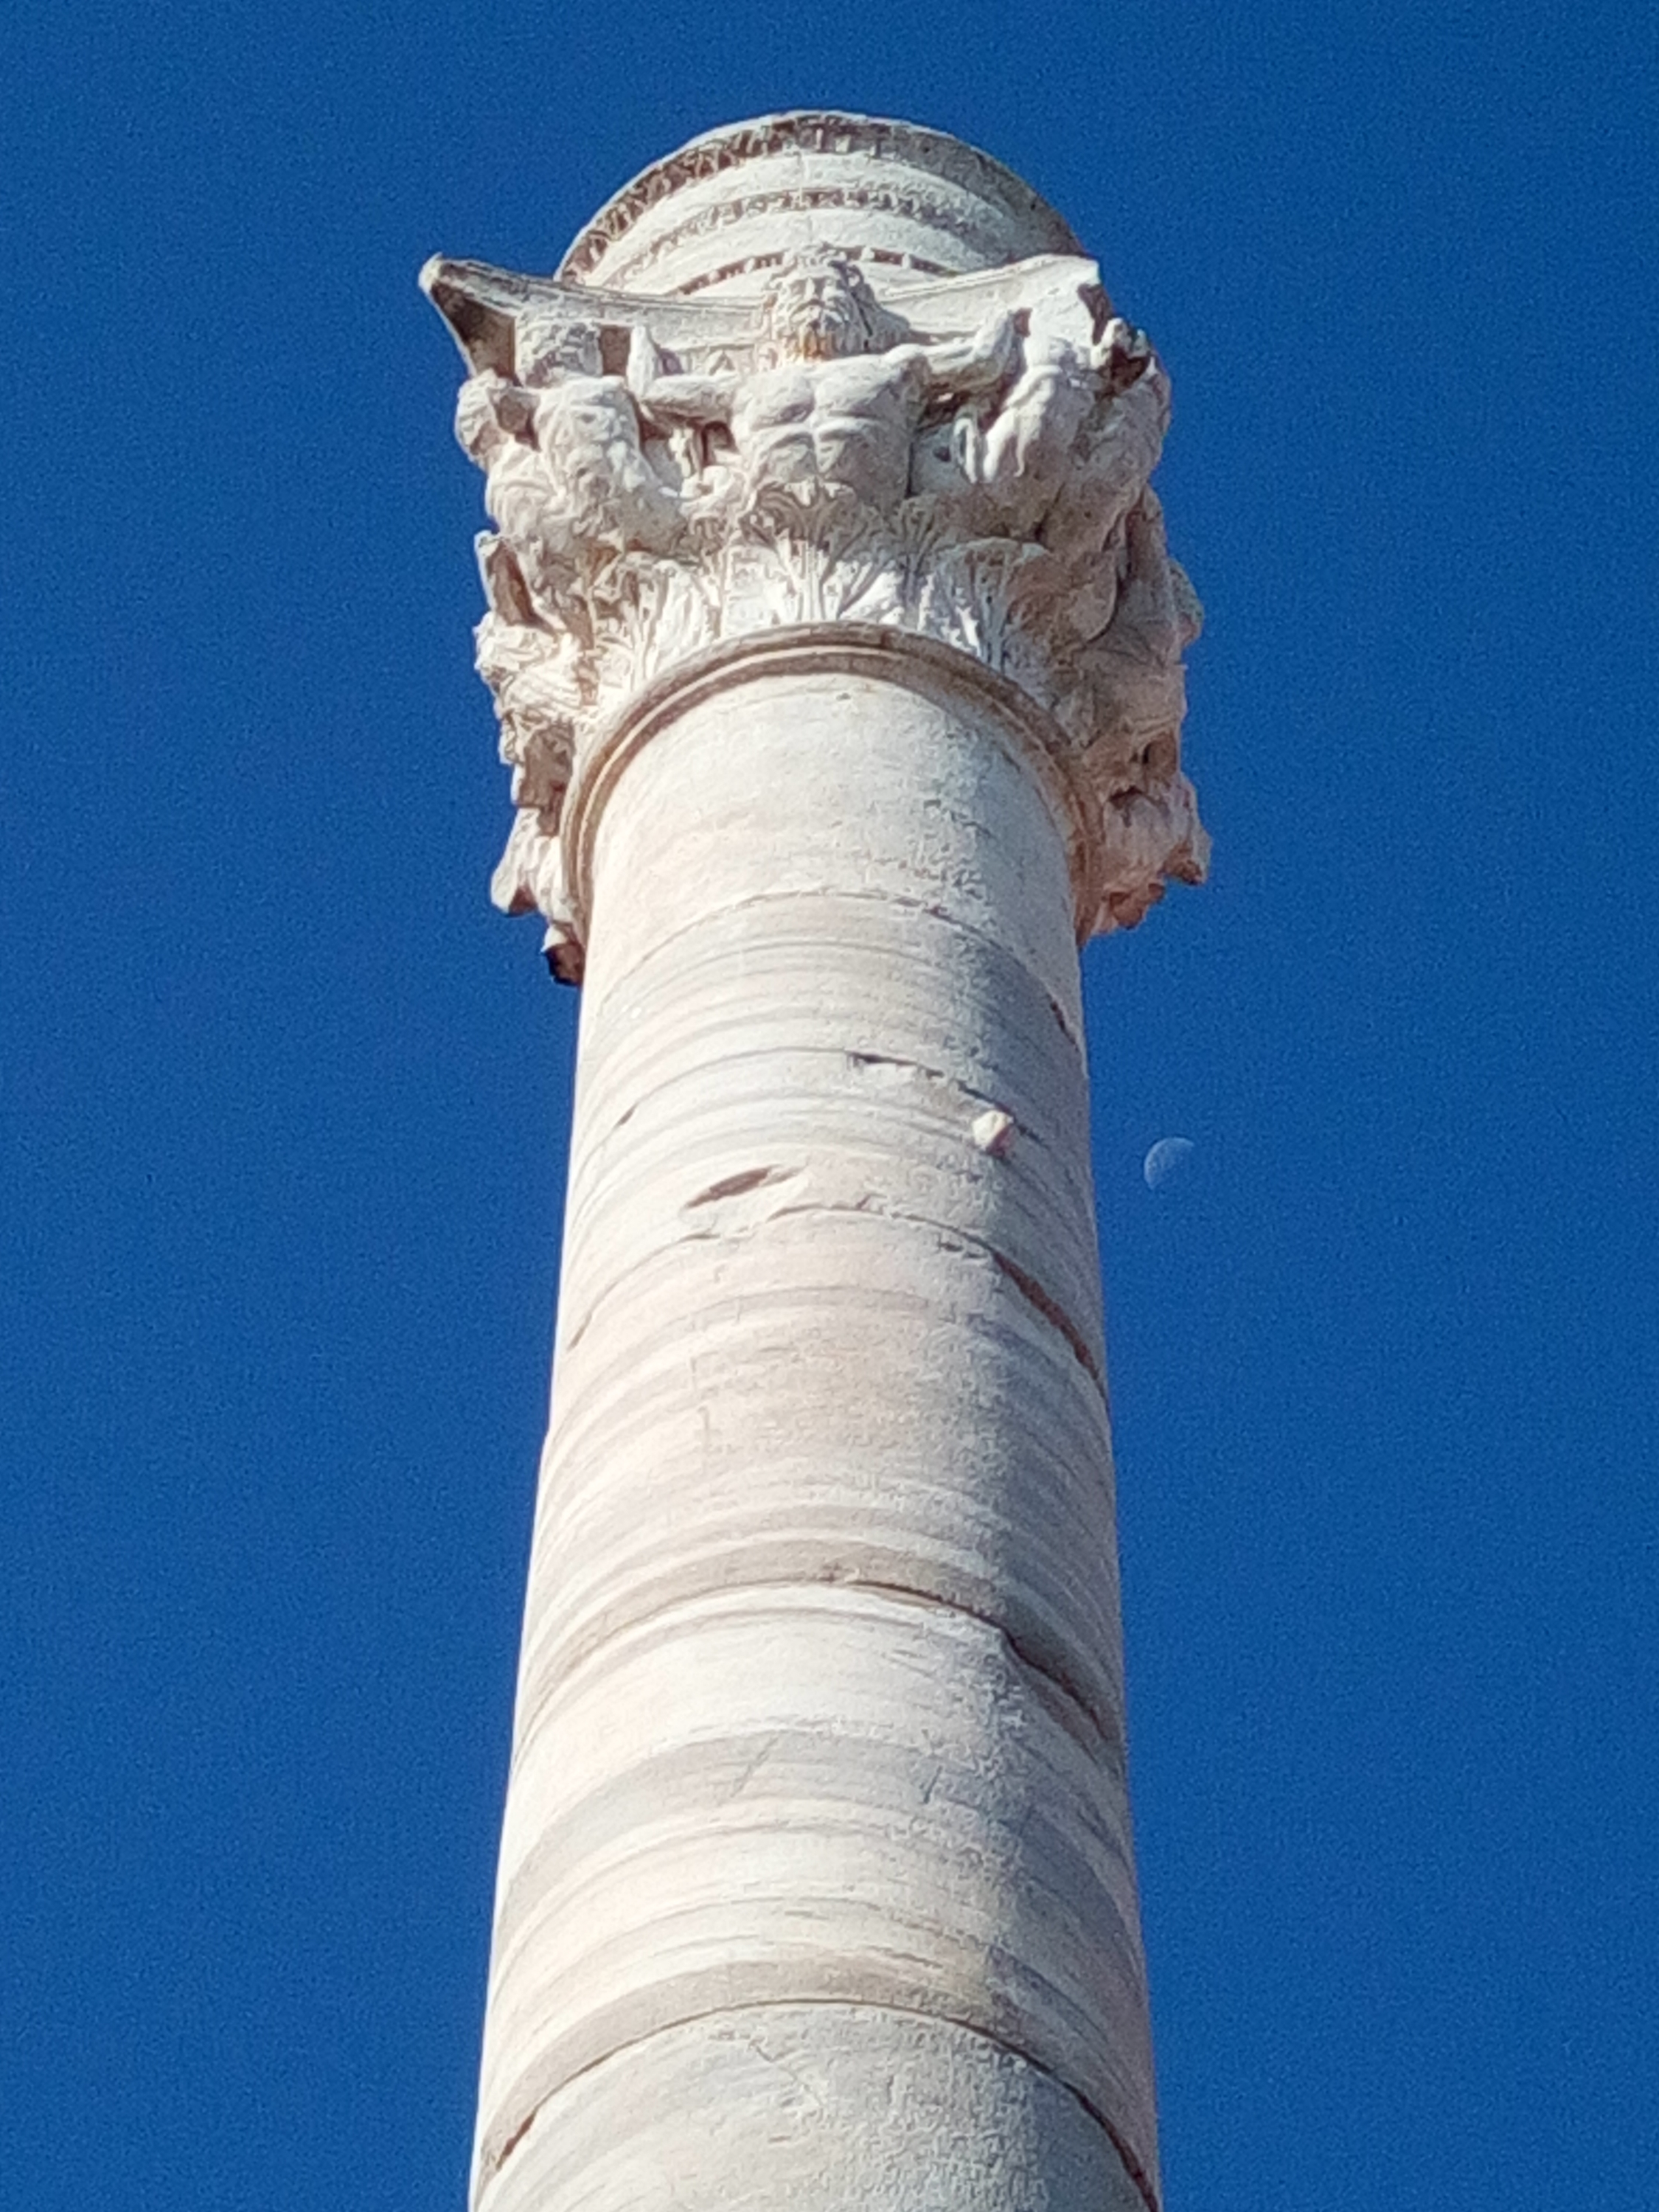 Roman Column and the moon